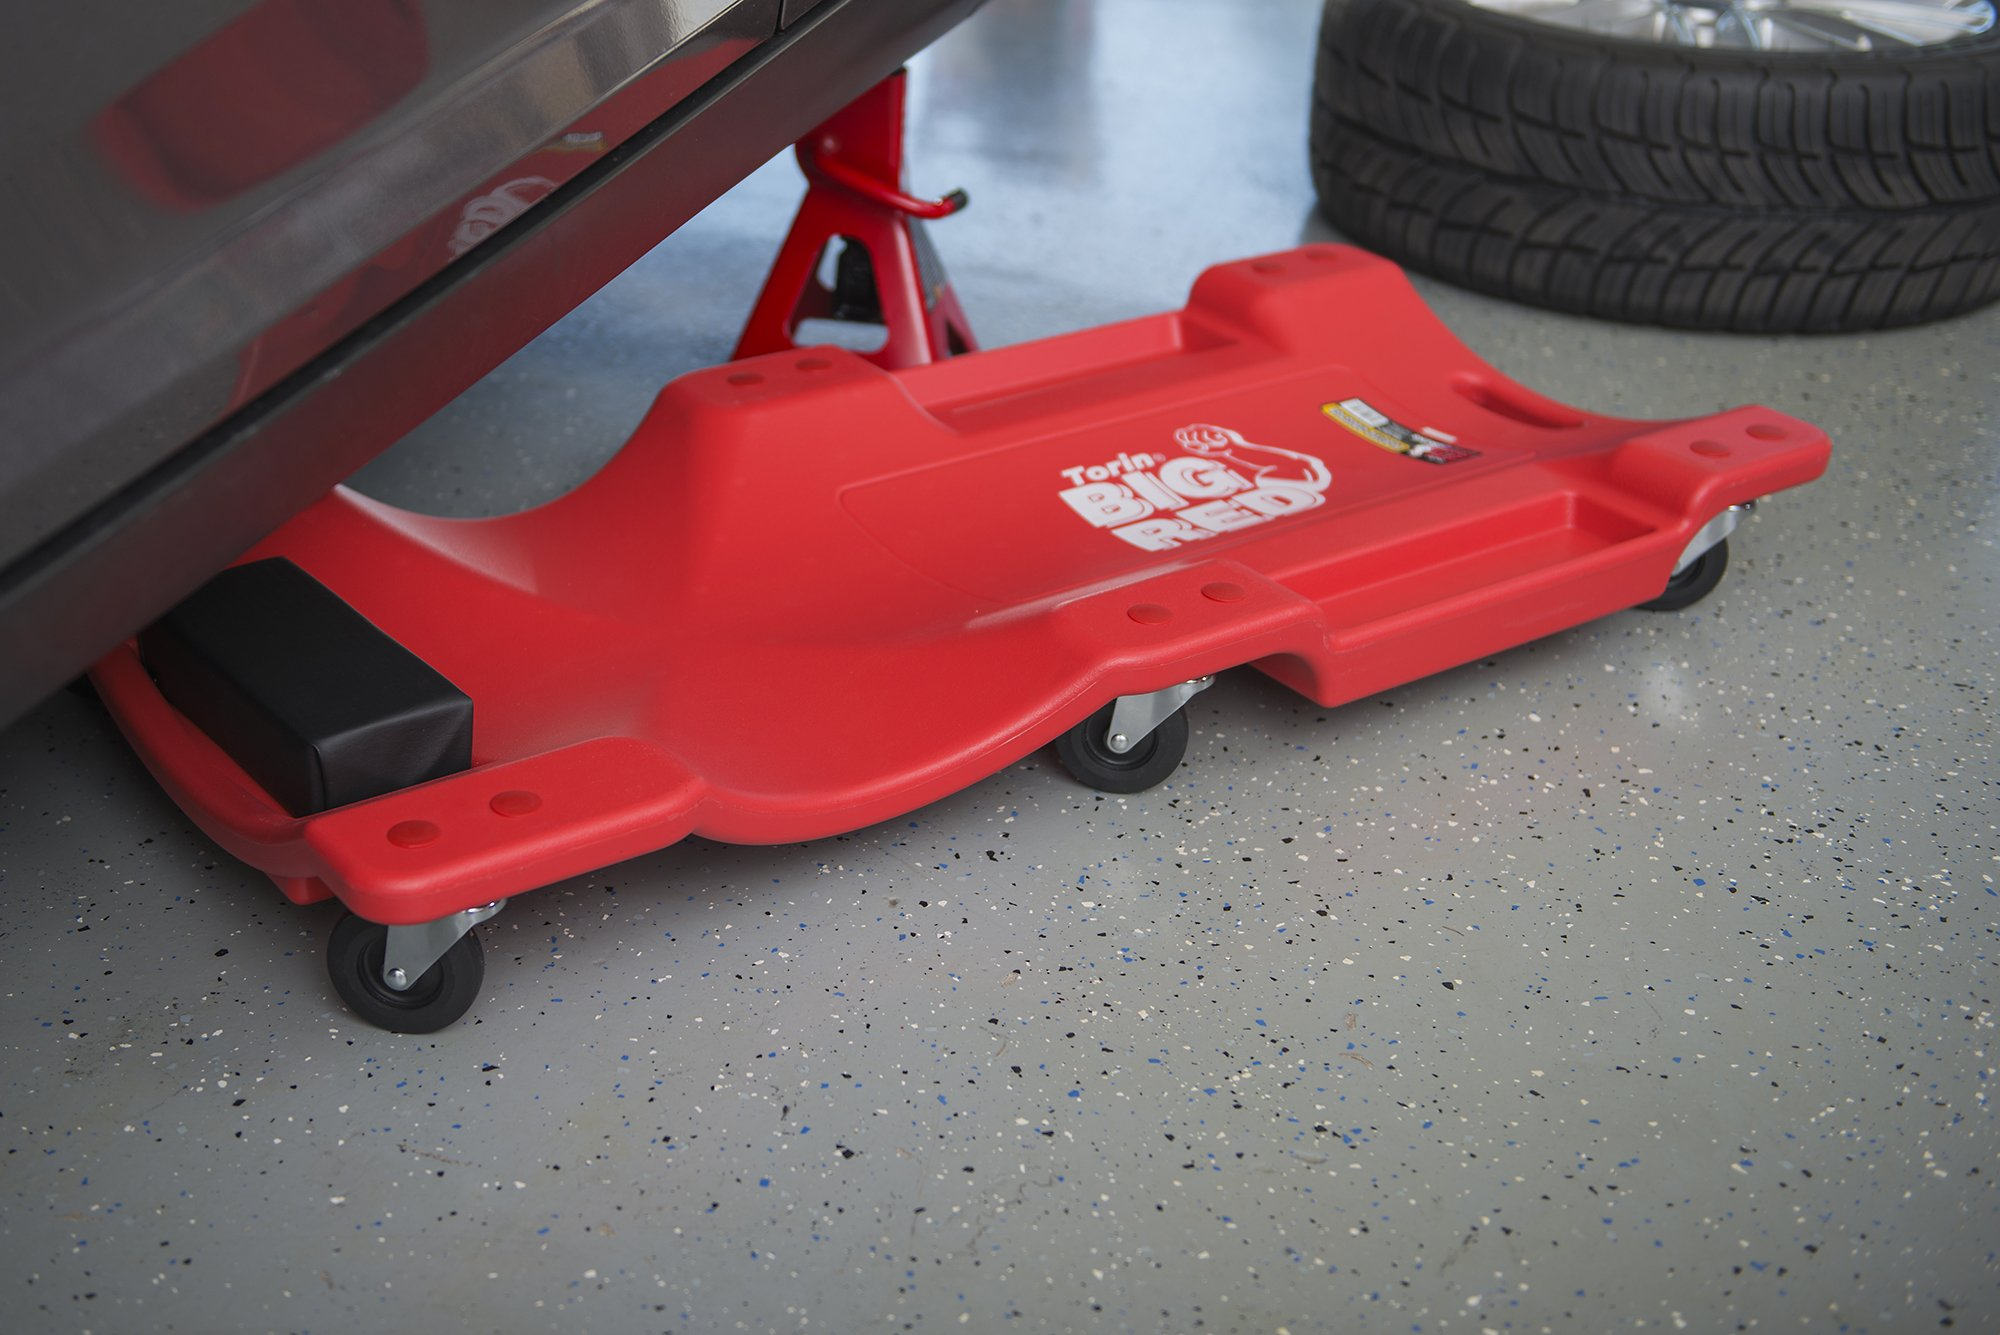 Torin Big Red Rolling Garage/Shop Creeper: 40'' Plastic Mechanic Cart with Padded Headrest, Red by Torin (Image #4)